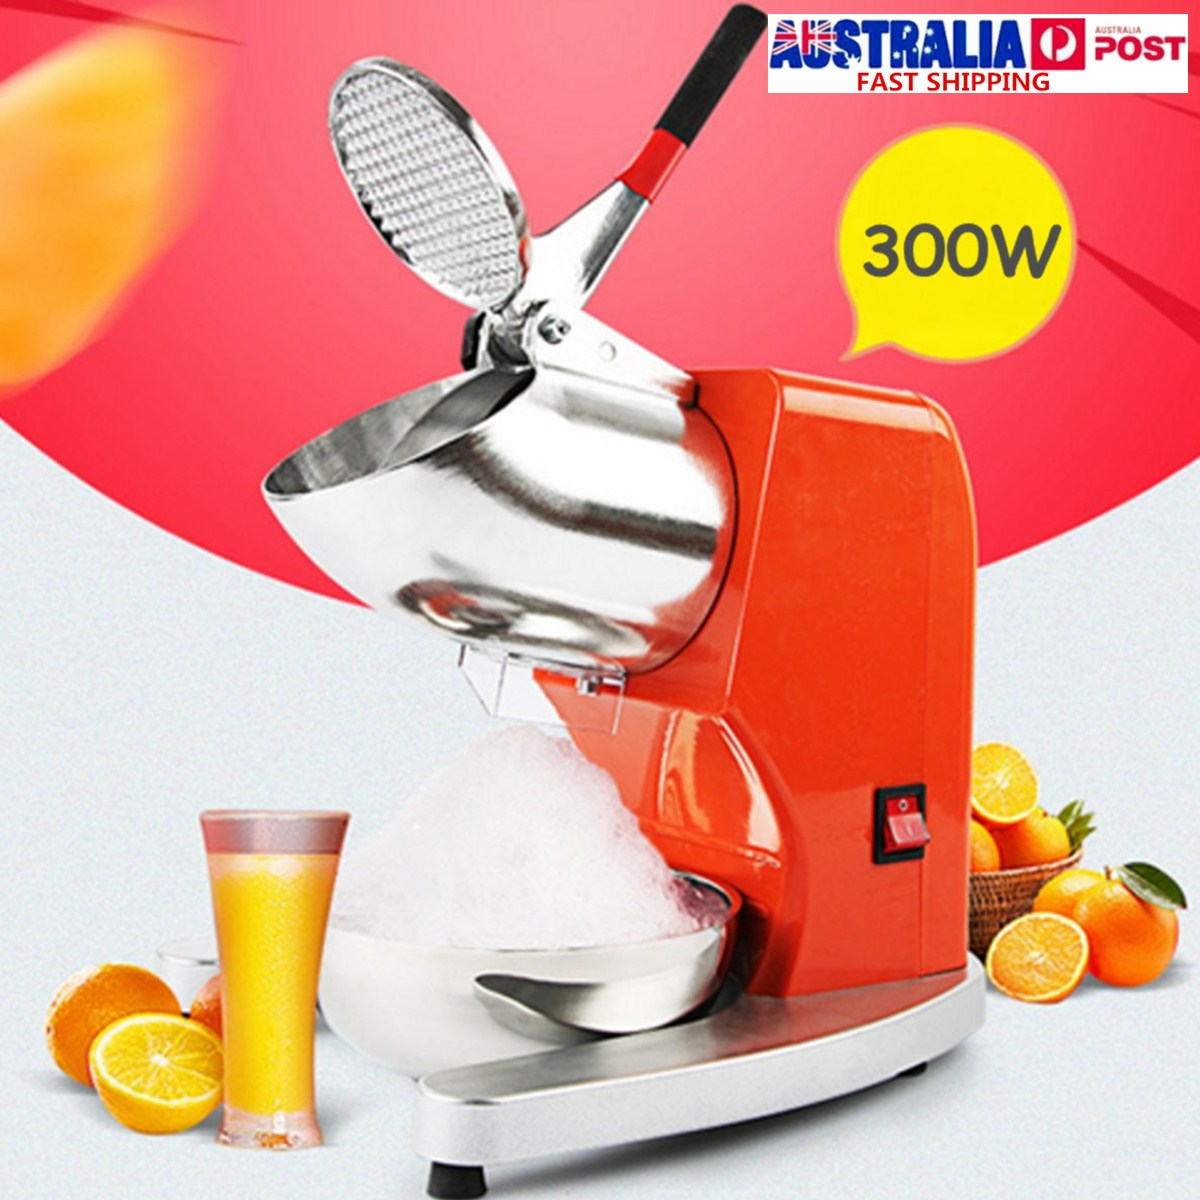 220V 380W Electric Ice Crusher Ice Shaver Machine Snow Cone Maker Shaved Ice Machine Ice Tools